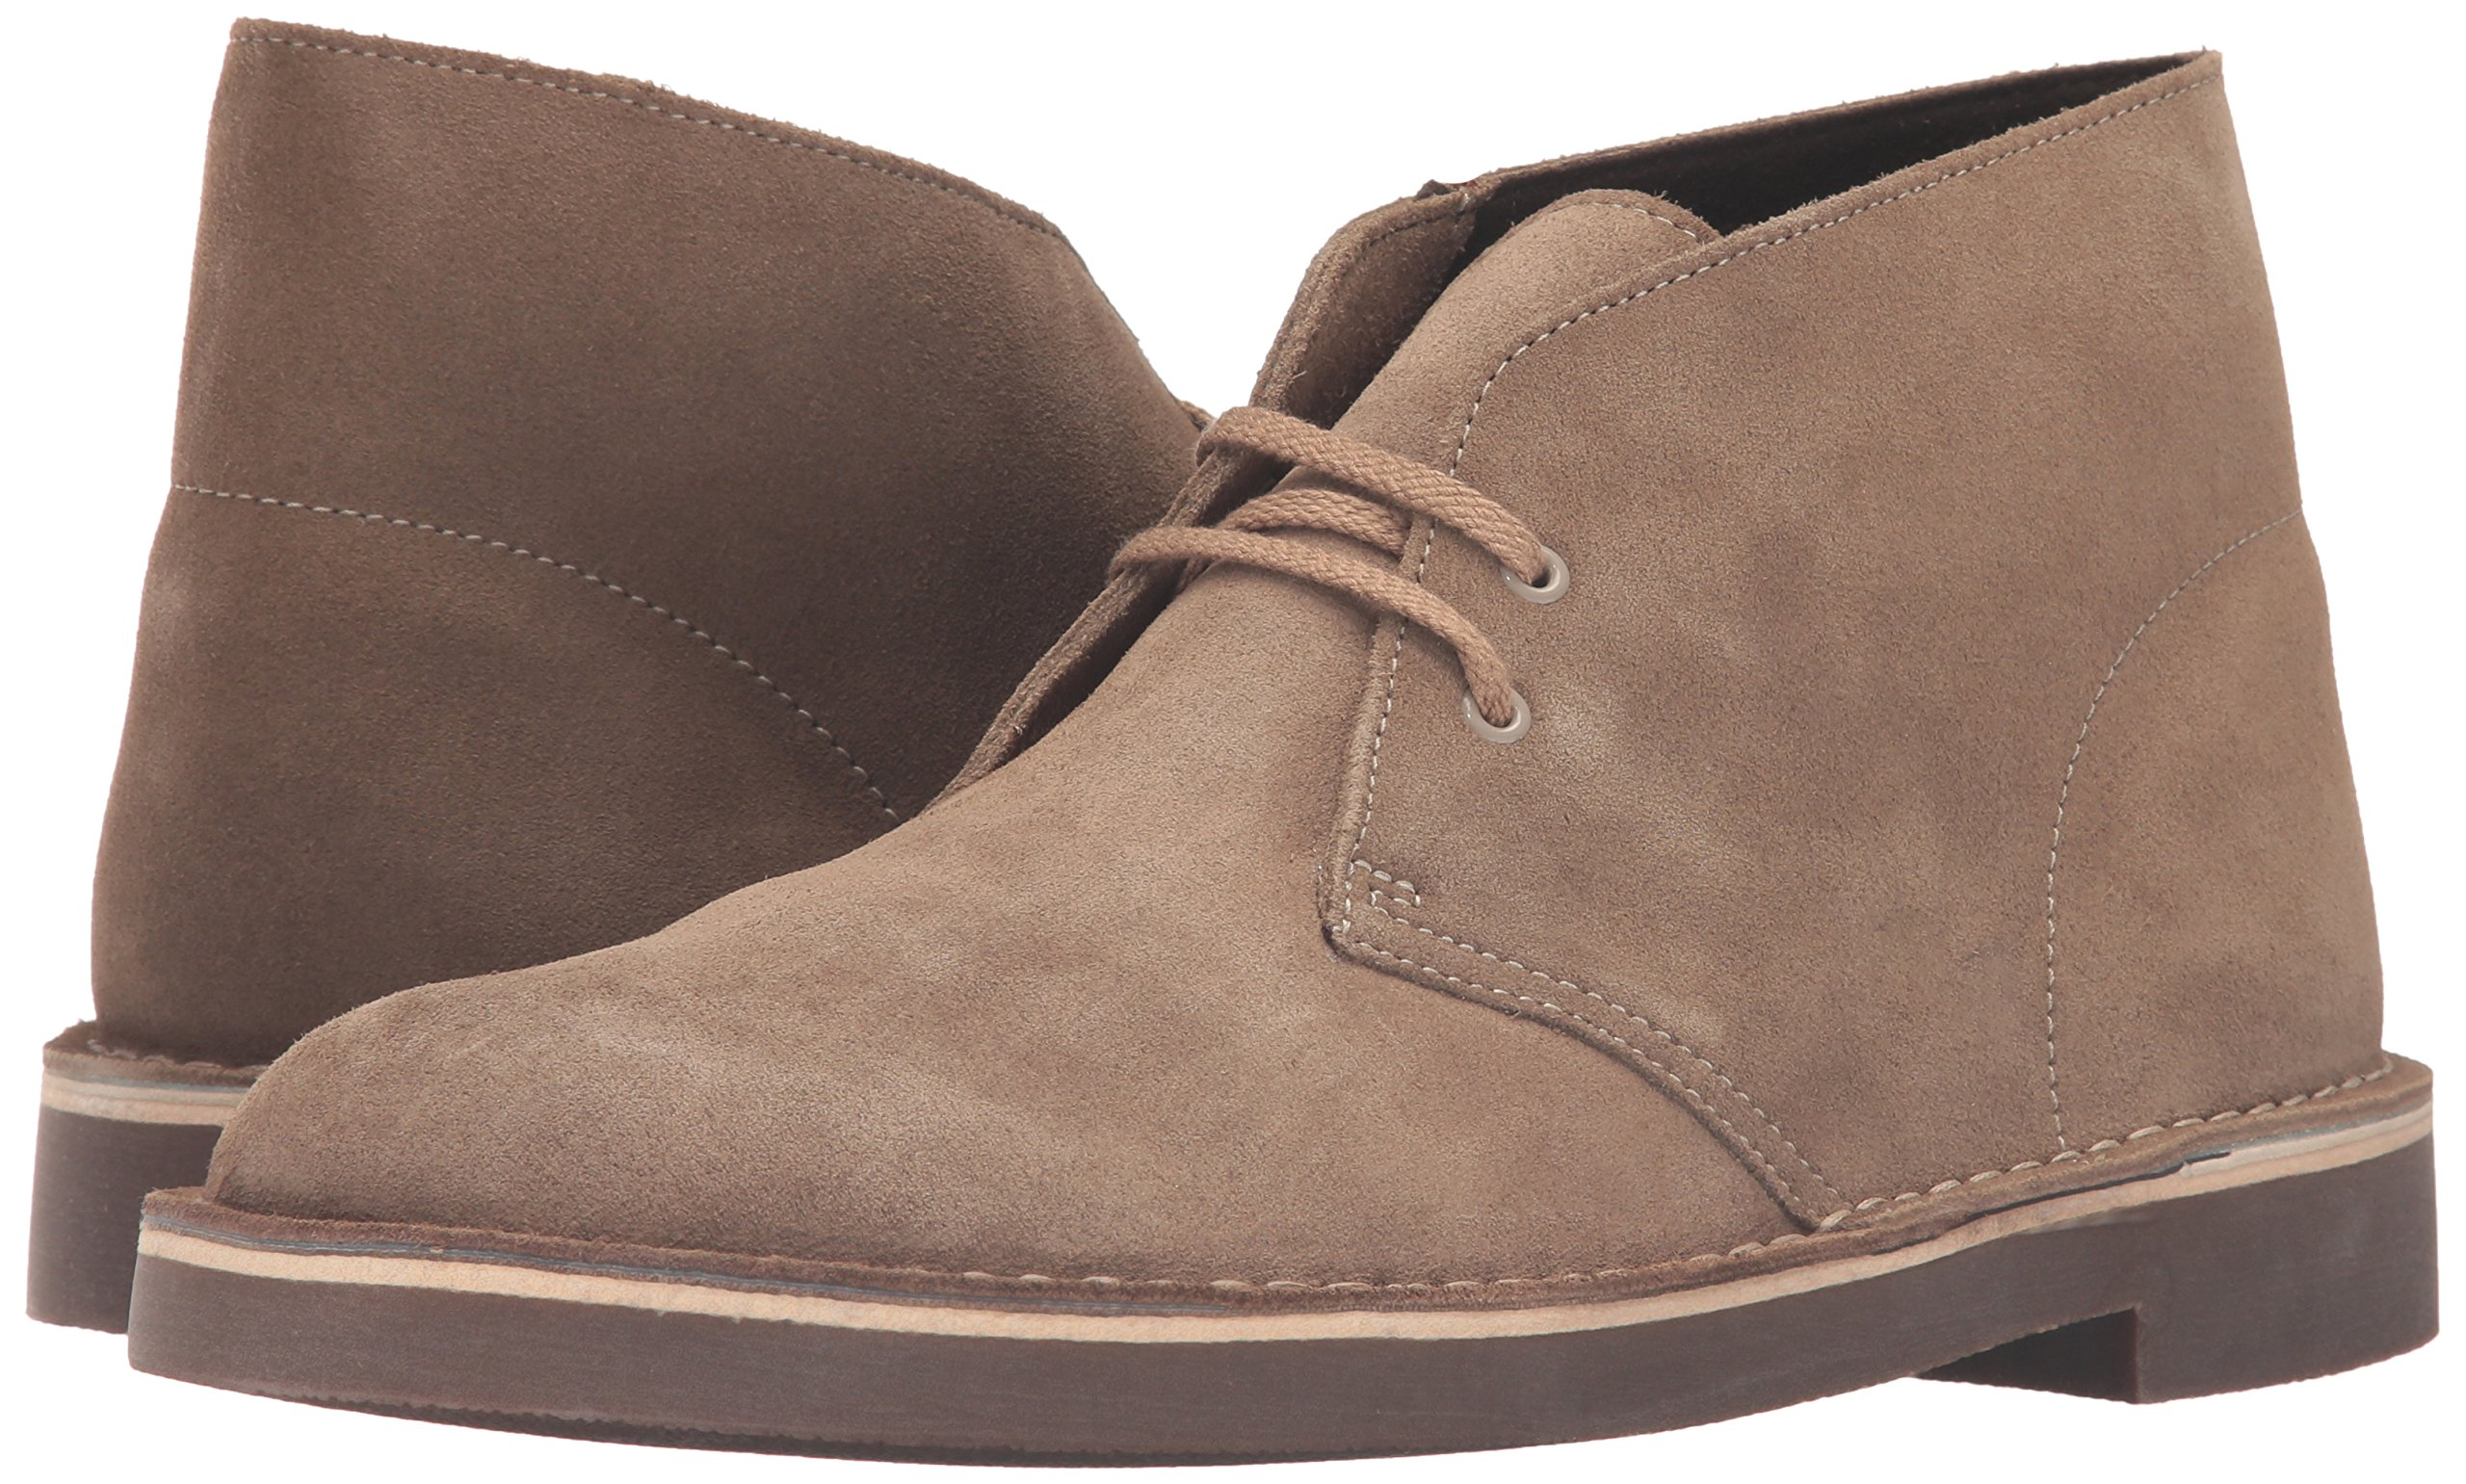 Clarks Men's Bushacre 2 Chukka Boot,Sand Sable,10 M US by CLARKS (Image #6)